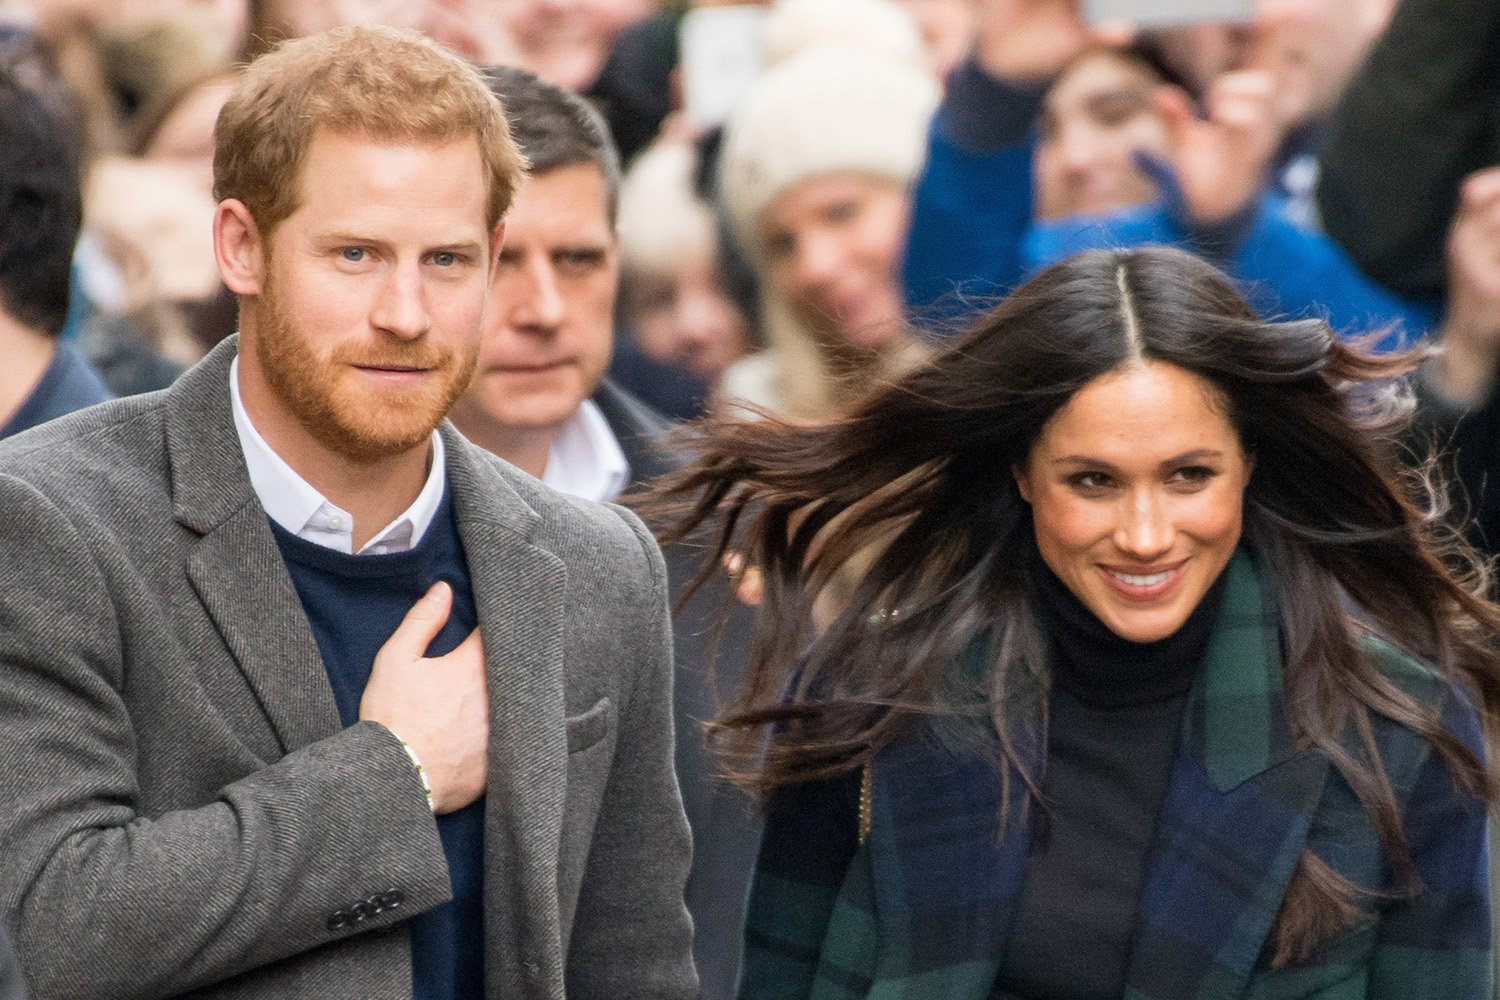 Prince Harry and Meghan Markle's worldwide  'agenda' revealed